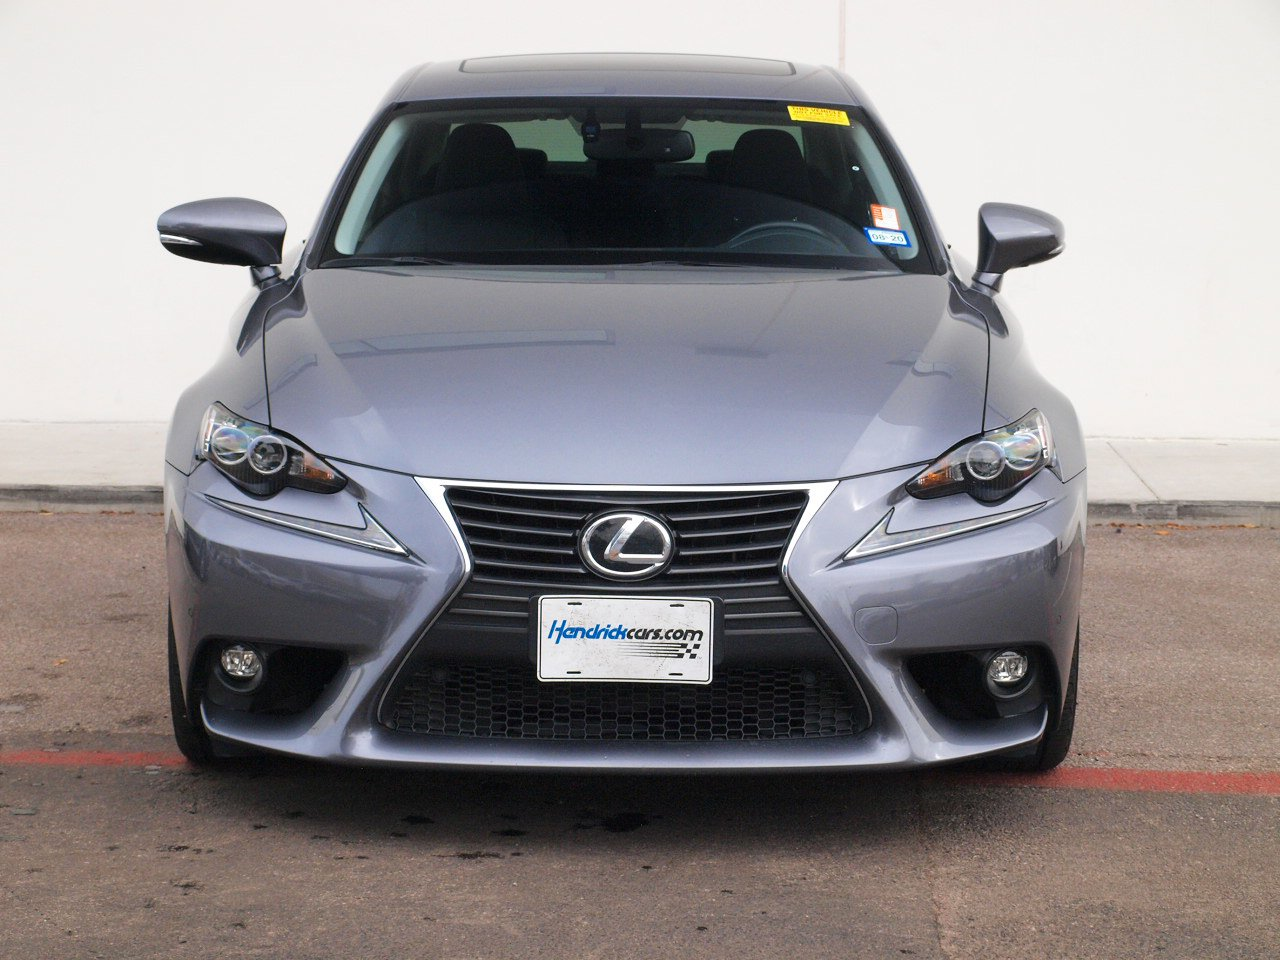 Pre-Owned 2016 Lexus IS 350 4dr Sdn RWD